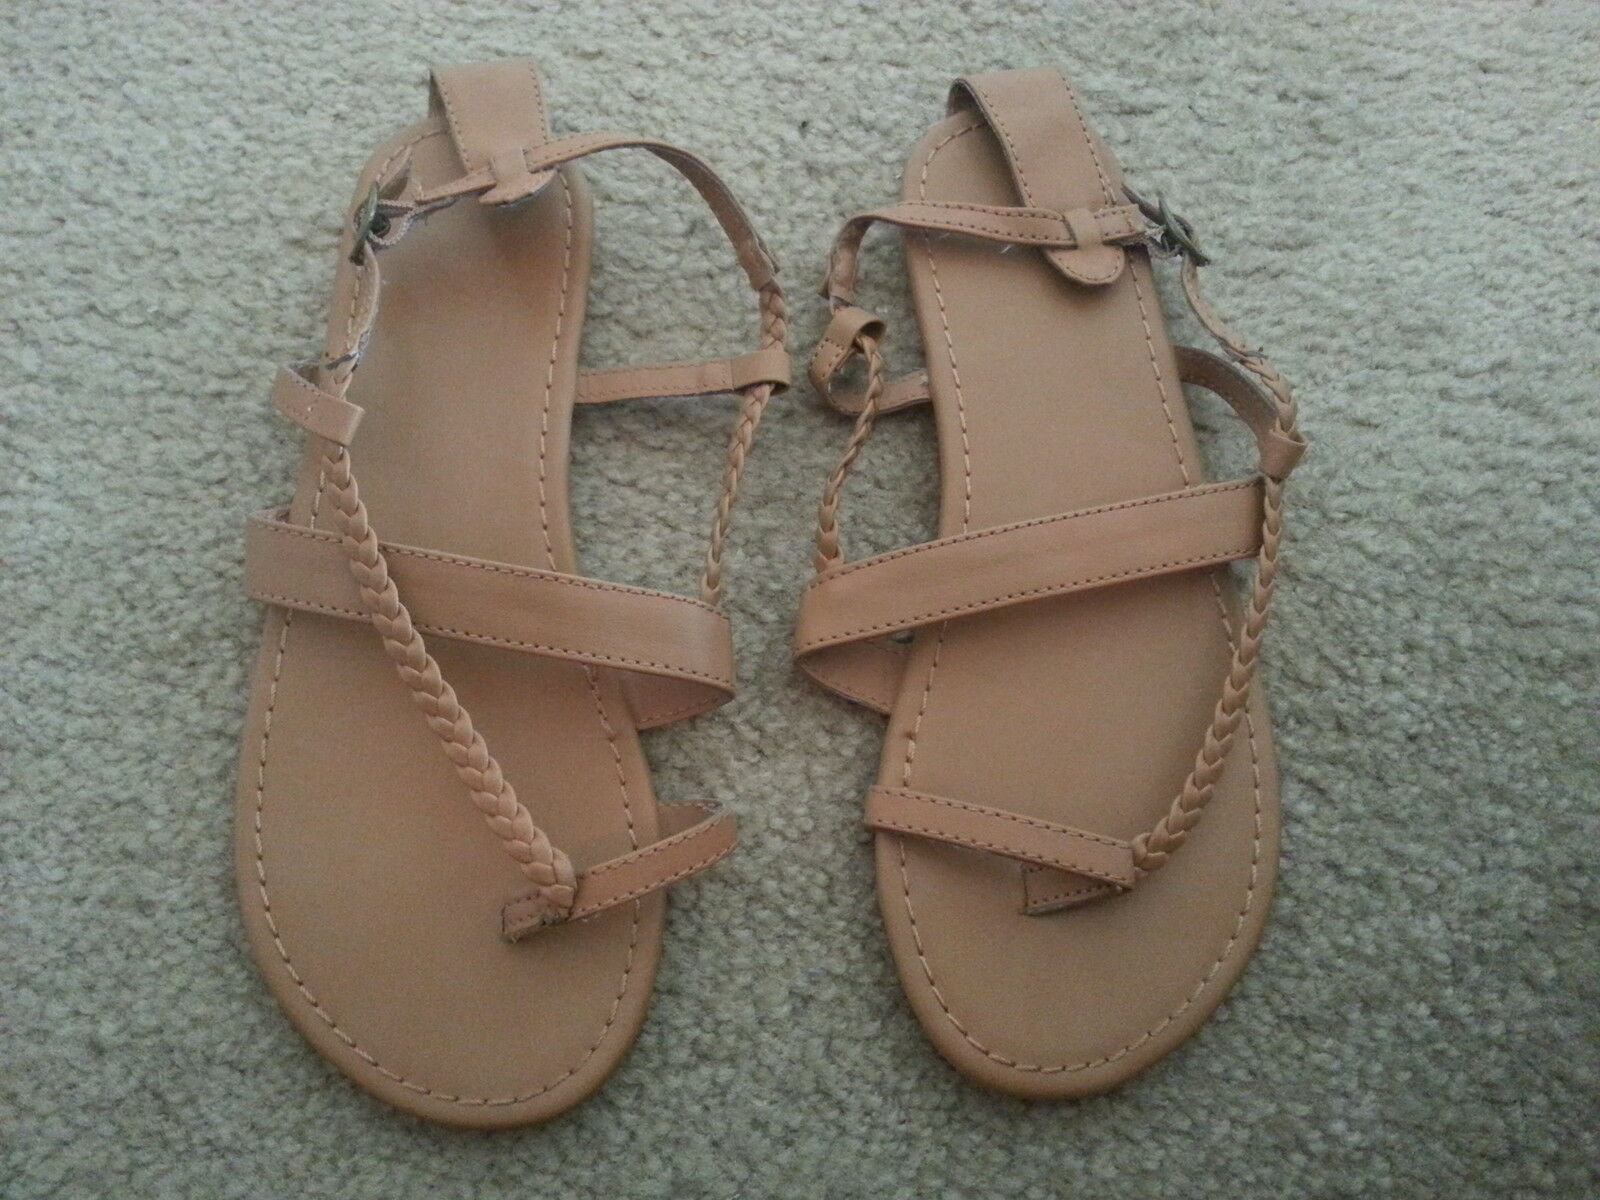 Divided Brown / Gladiator Tan Flat Strappy Braided Gladiator / Sandals - US 5 / NWOT! 5ab7c5